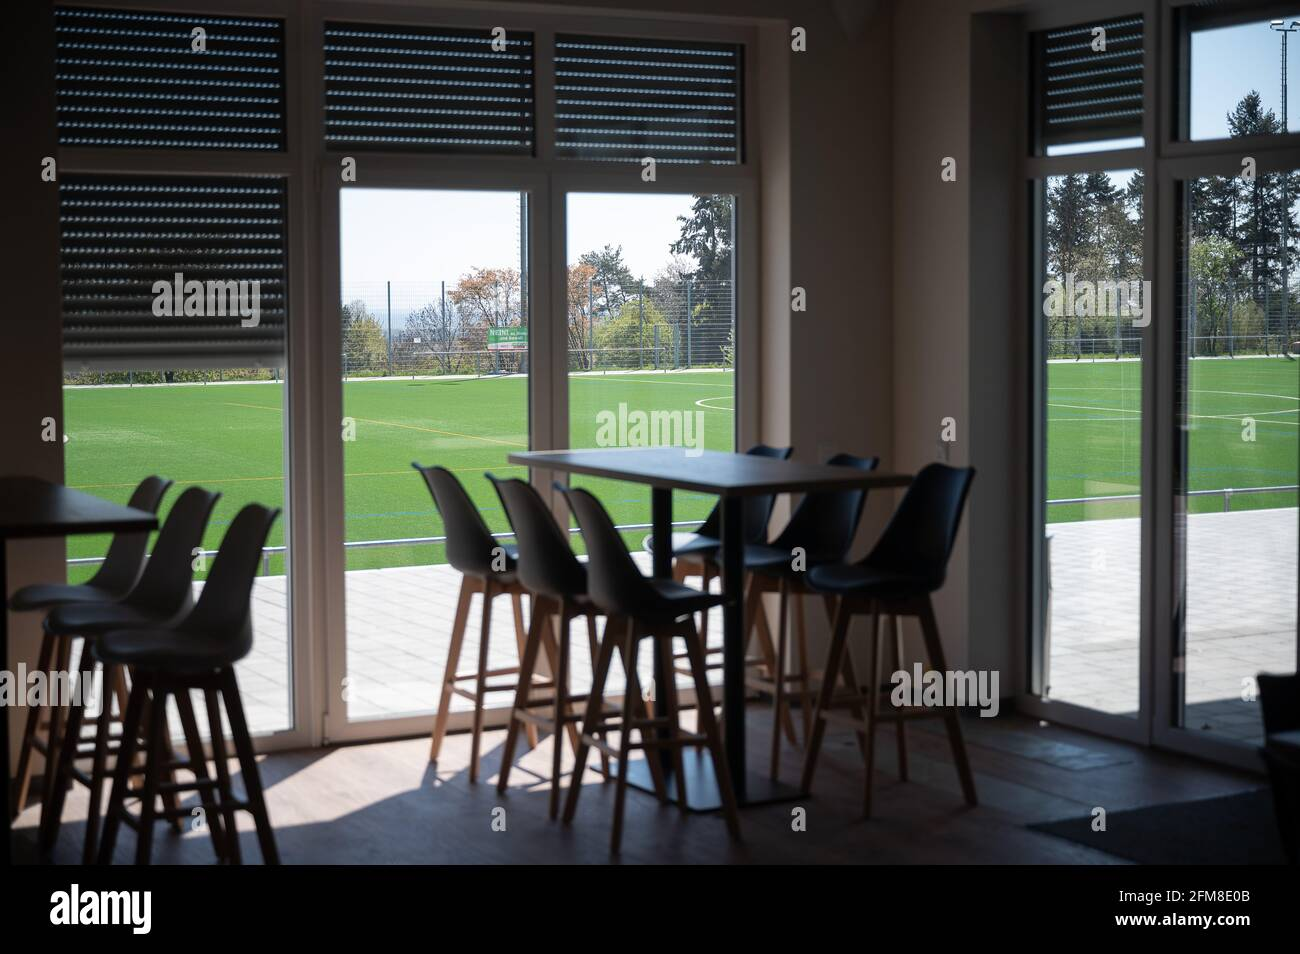 Kronberg Im Taunus, Germany. 25th Apr, 2021. Shutters are lowered at the SG Oberhöchstadt clubhouse. Credit: Sebastian Gollnow/dpa/Alamy Live News Stock Photo